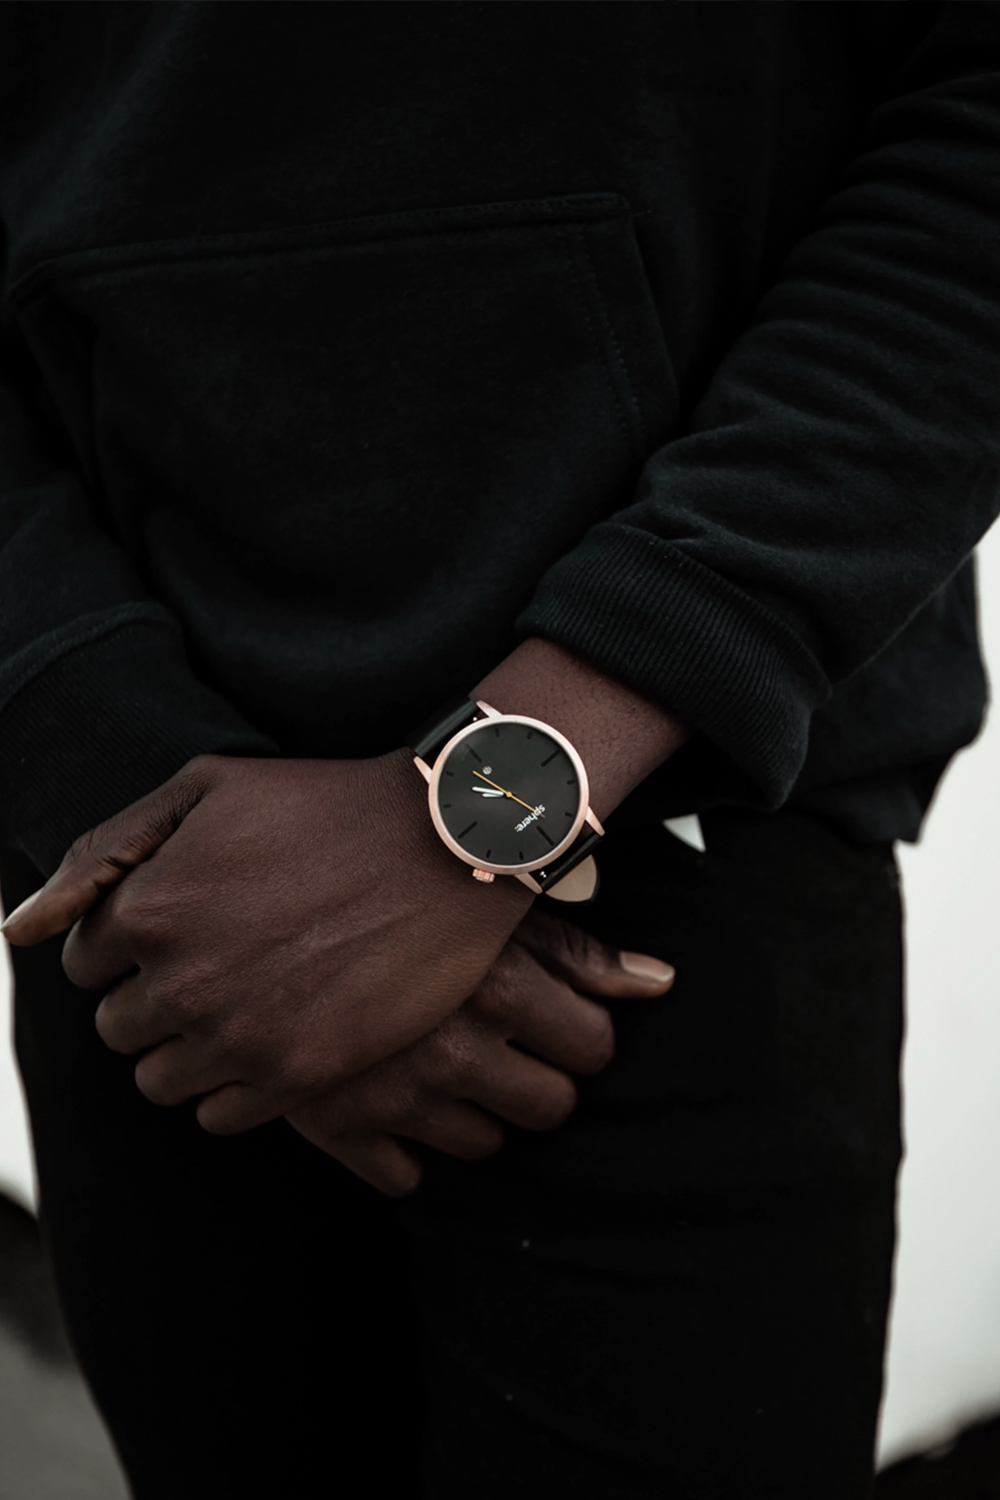 a close up picture of a men wearing watch on a hand